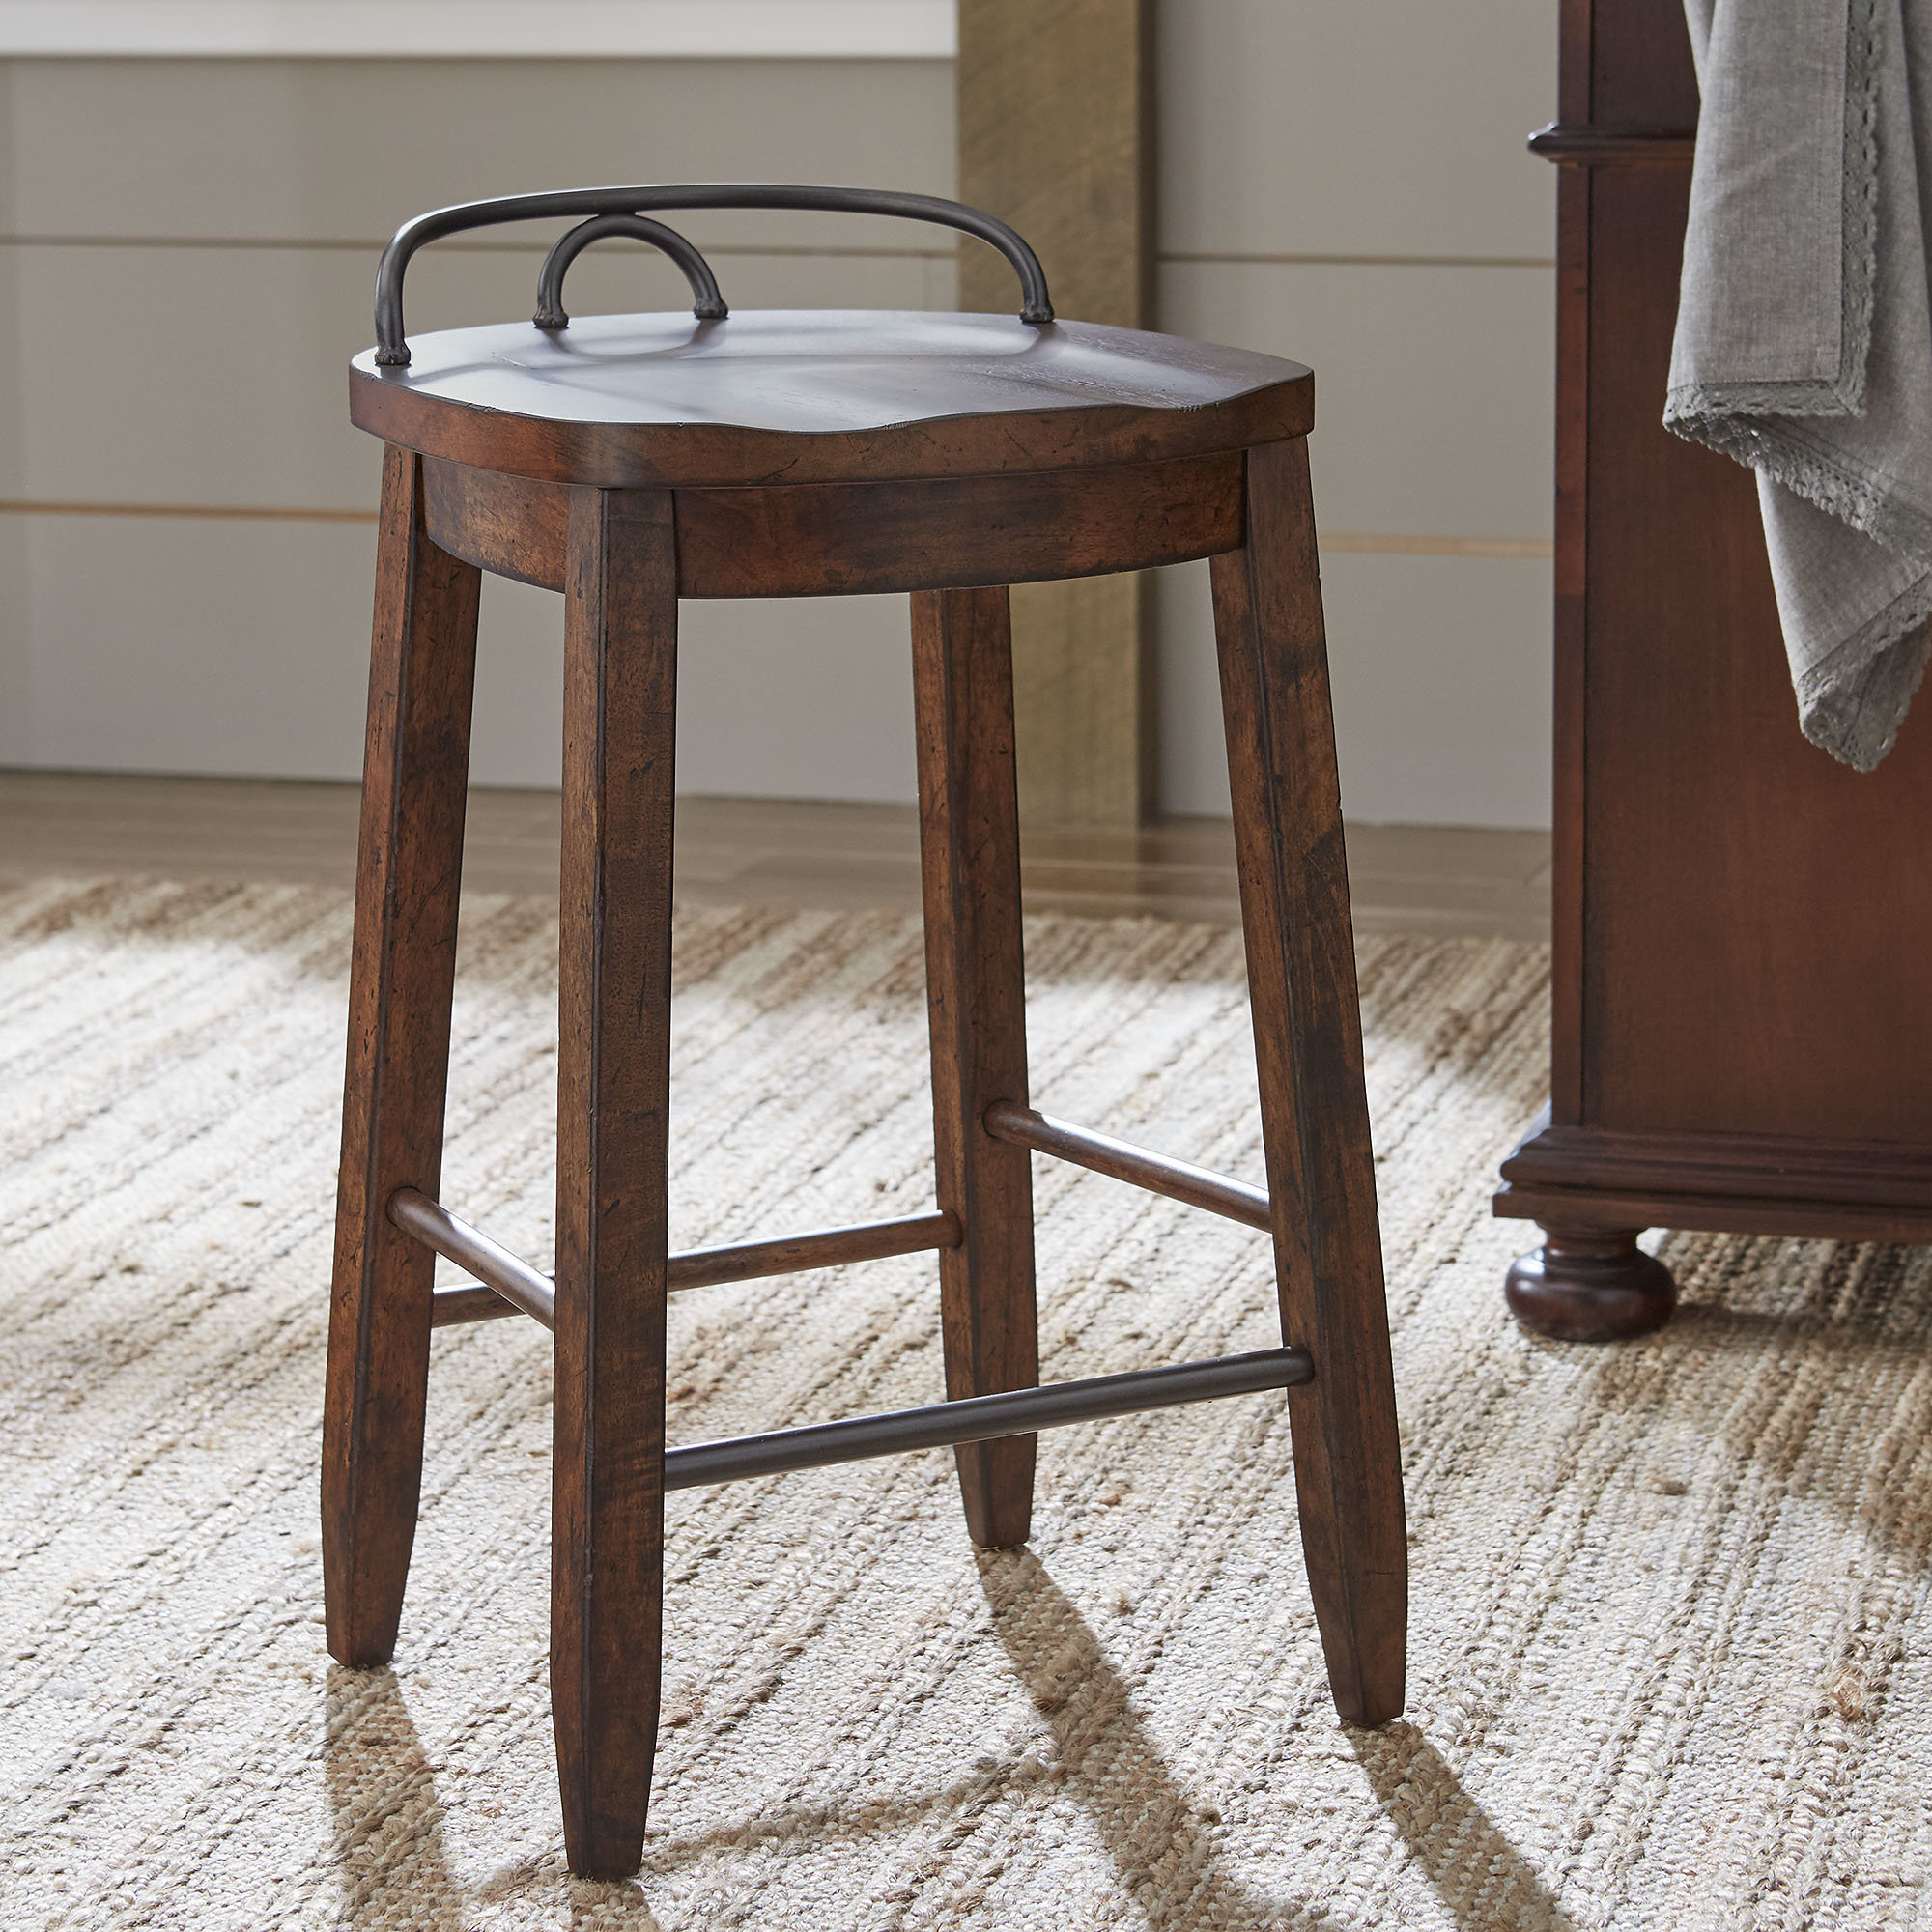 bar tables height accent table inch high bistro small pub with stools round set tall and counter top sets full size room essentials area rug red tablecloth white coffee ikea boho